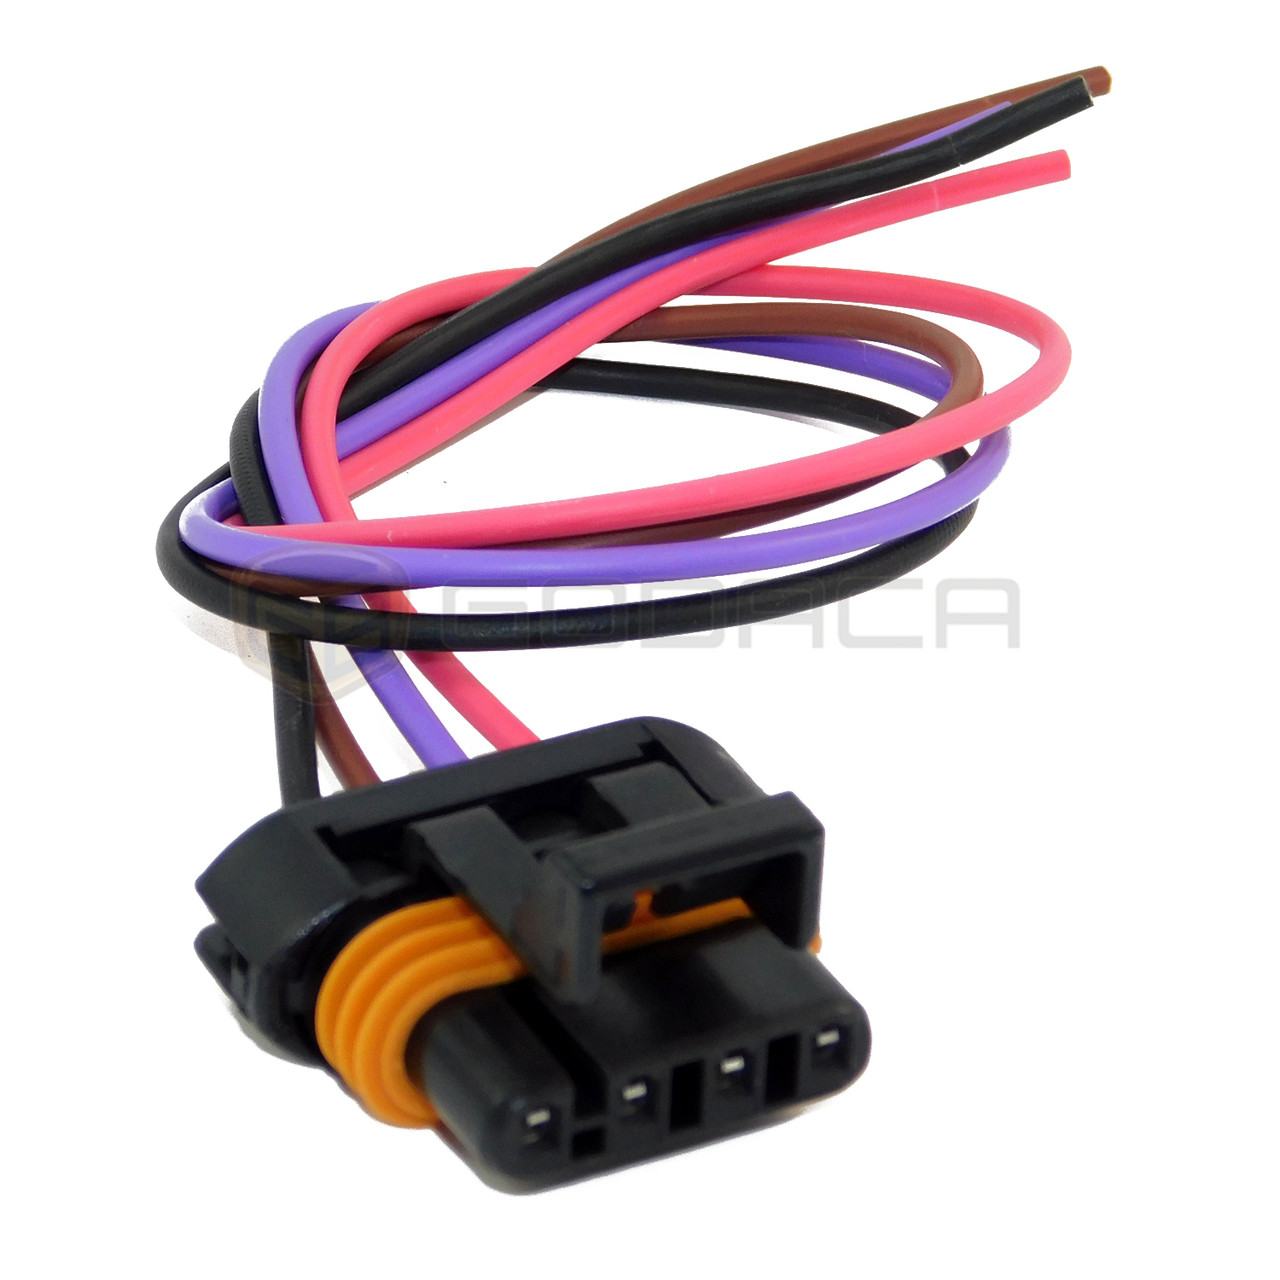 medium resolution of  1 x ls1 ls6 ignition coil wiring harness pigtail connector gm camaro coil wire harness on